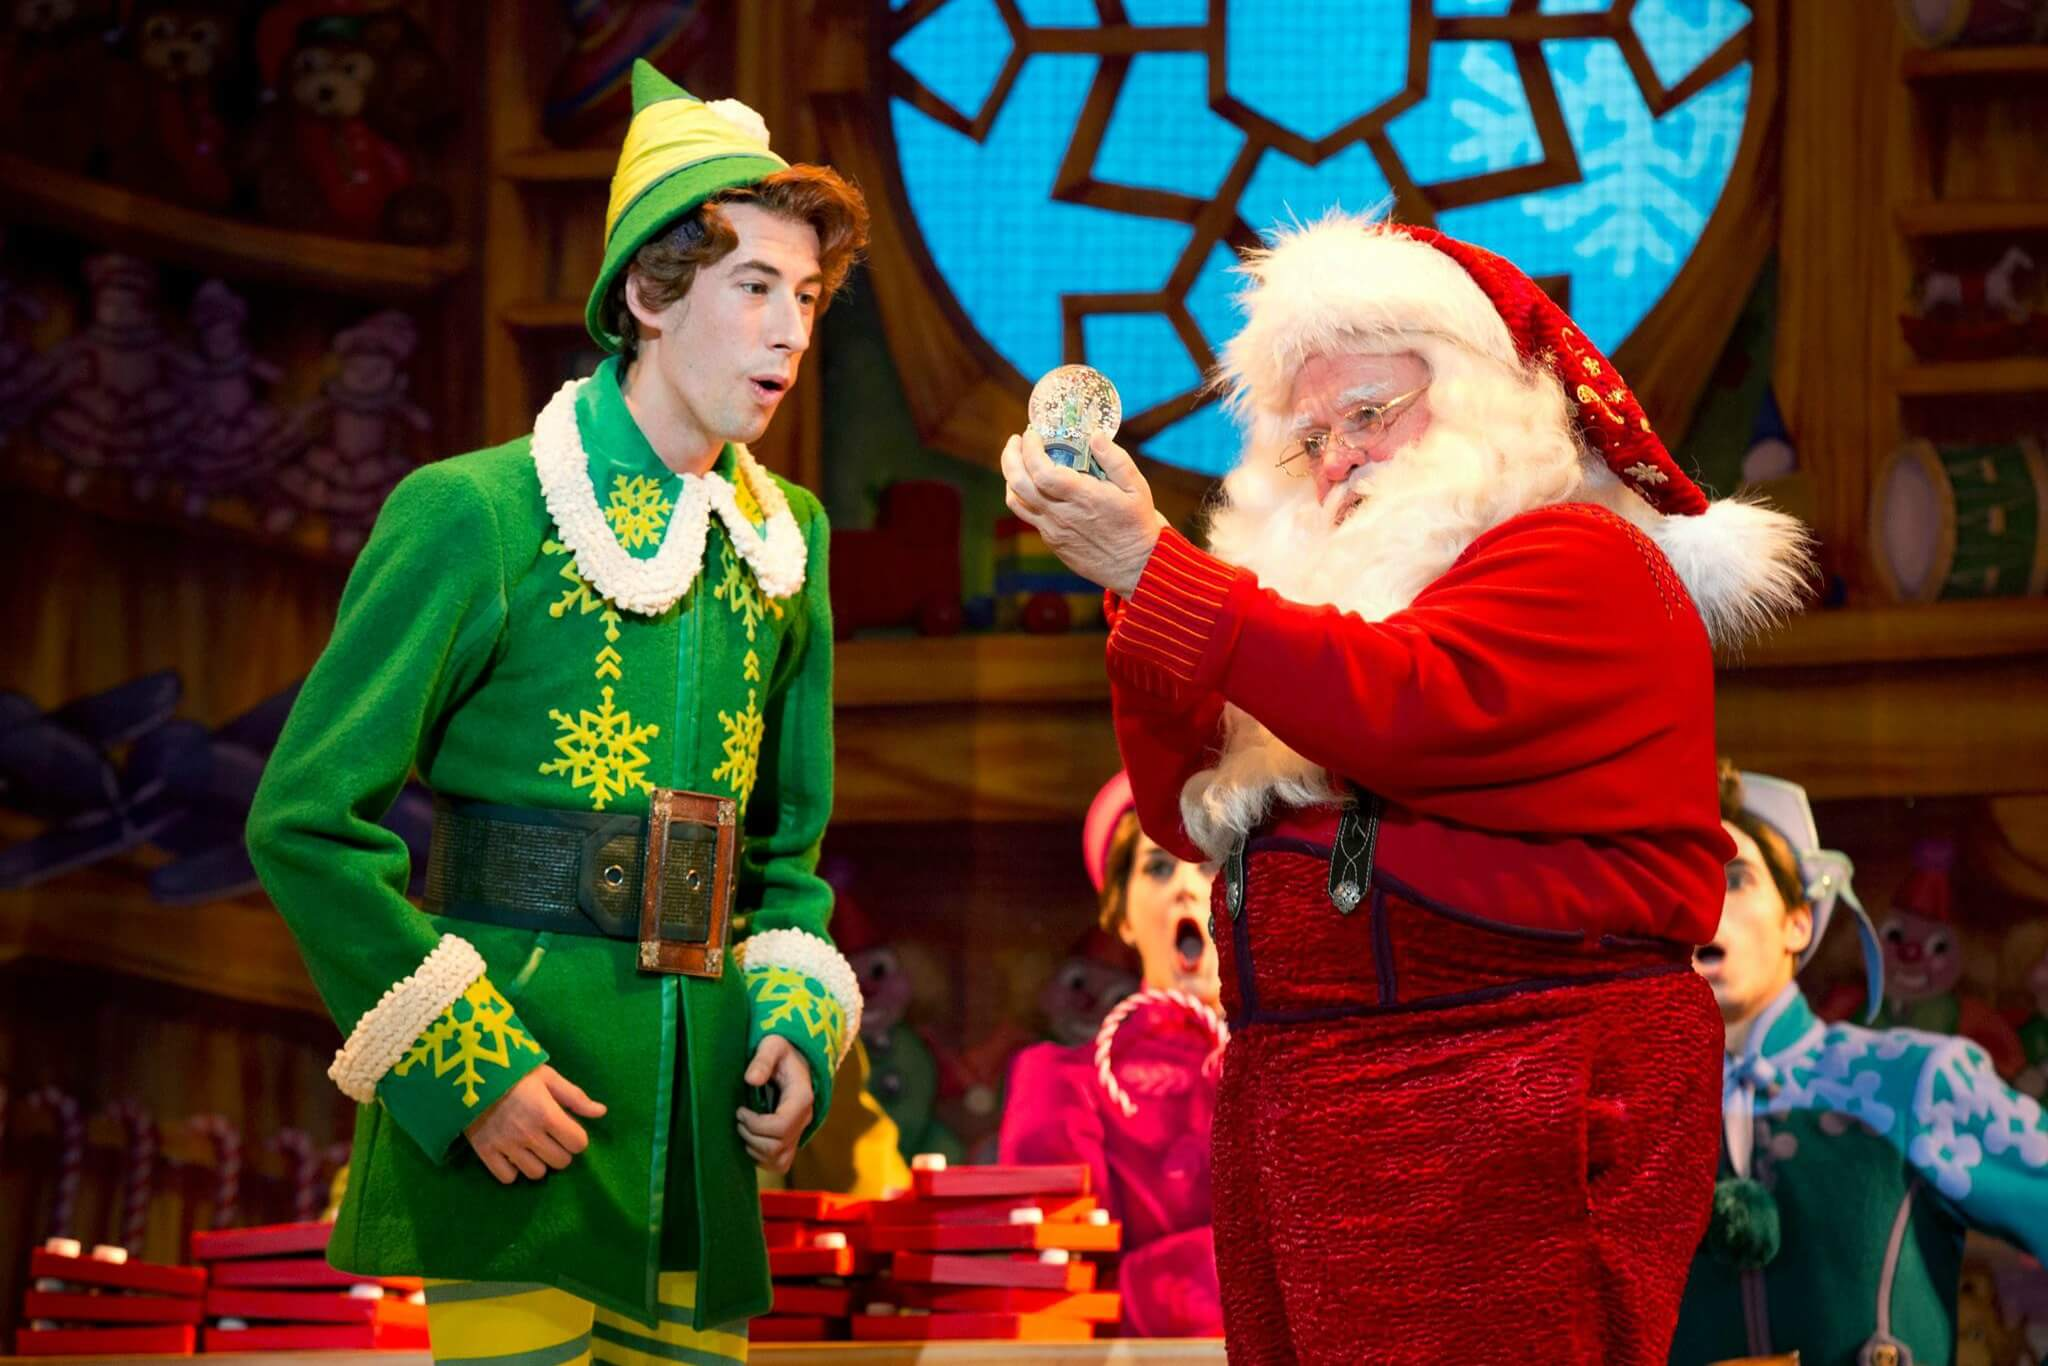 TOP HOLIDAY SHOWS TO SEE THIS SEASON